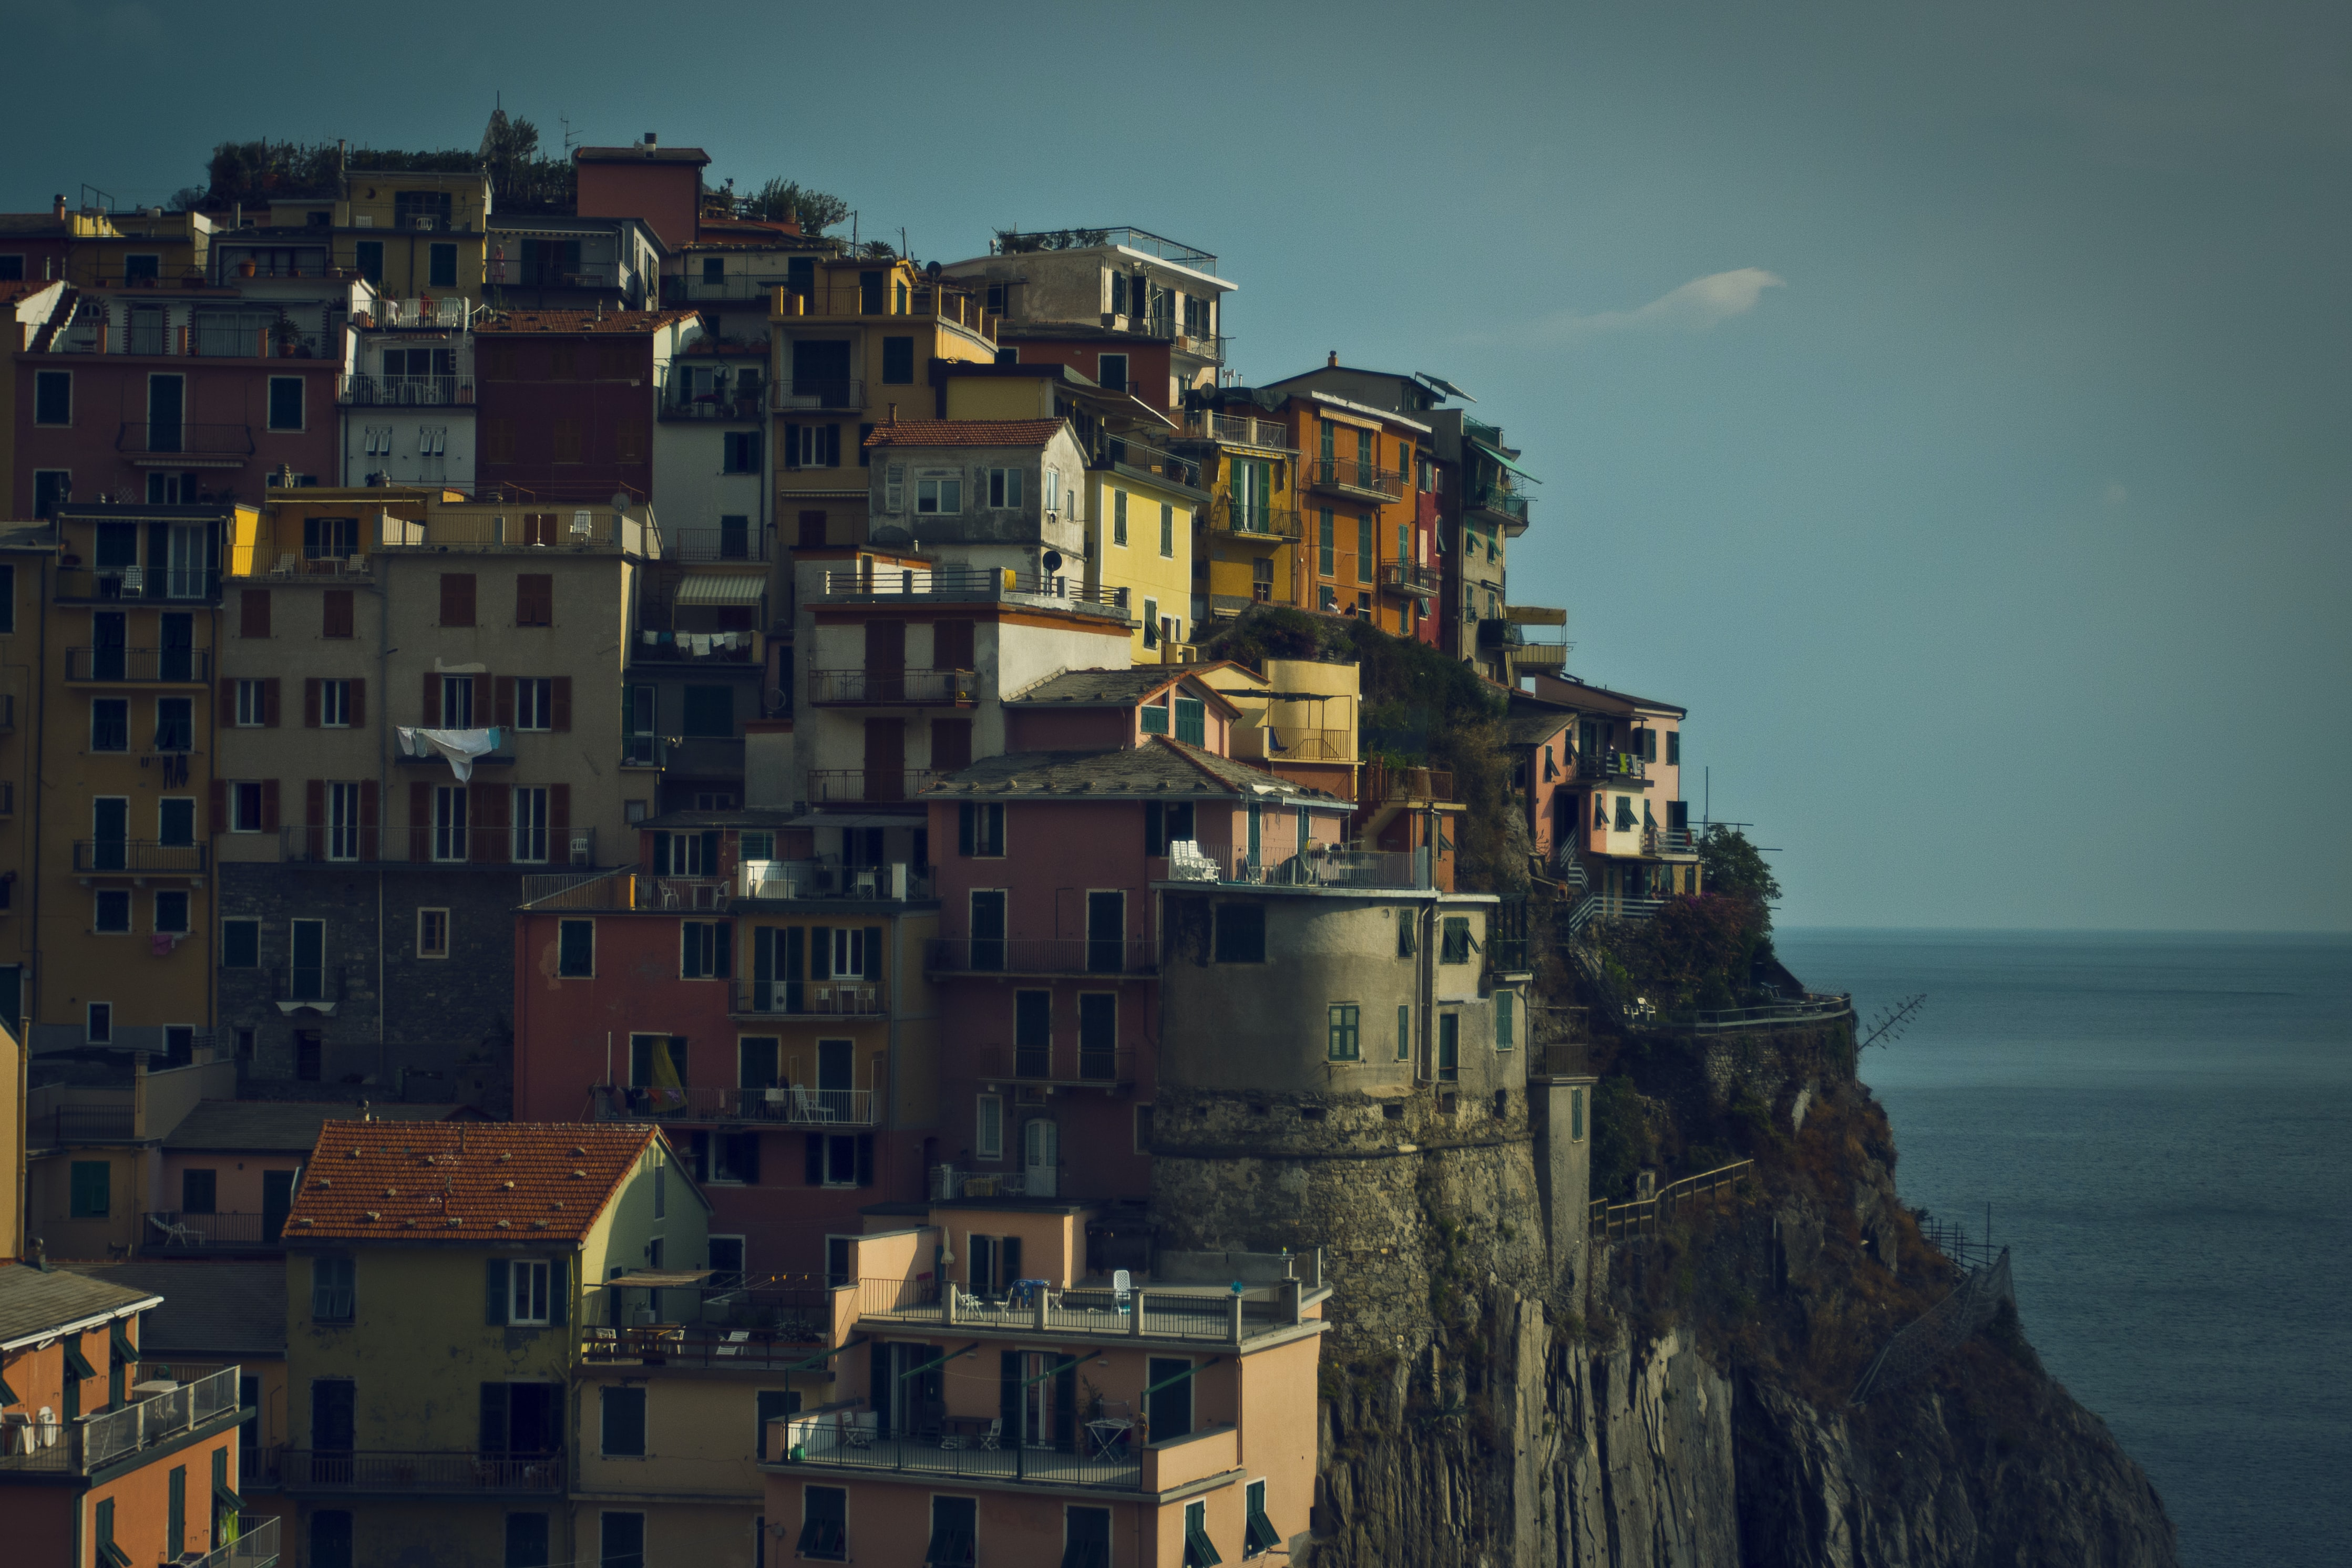 View of a cliff-side village and the sea.